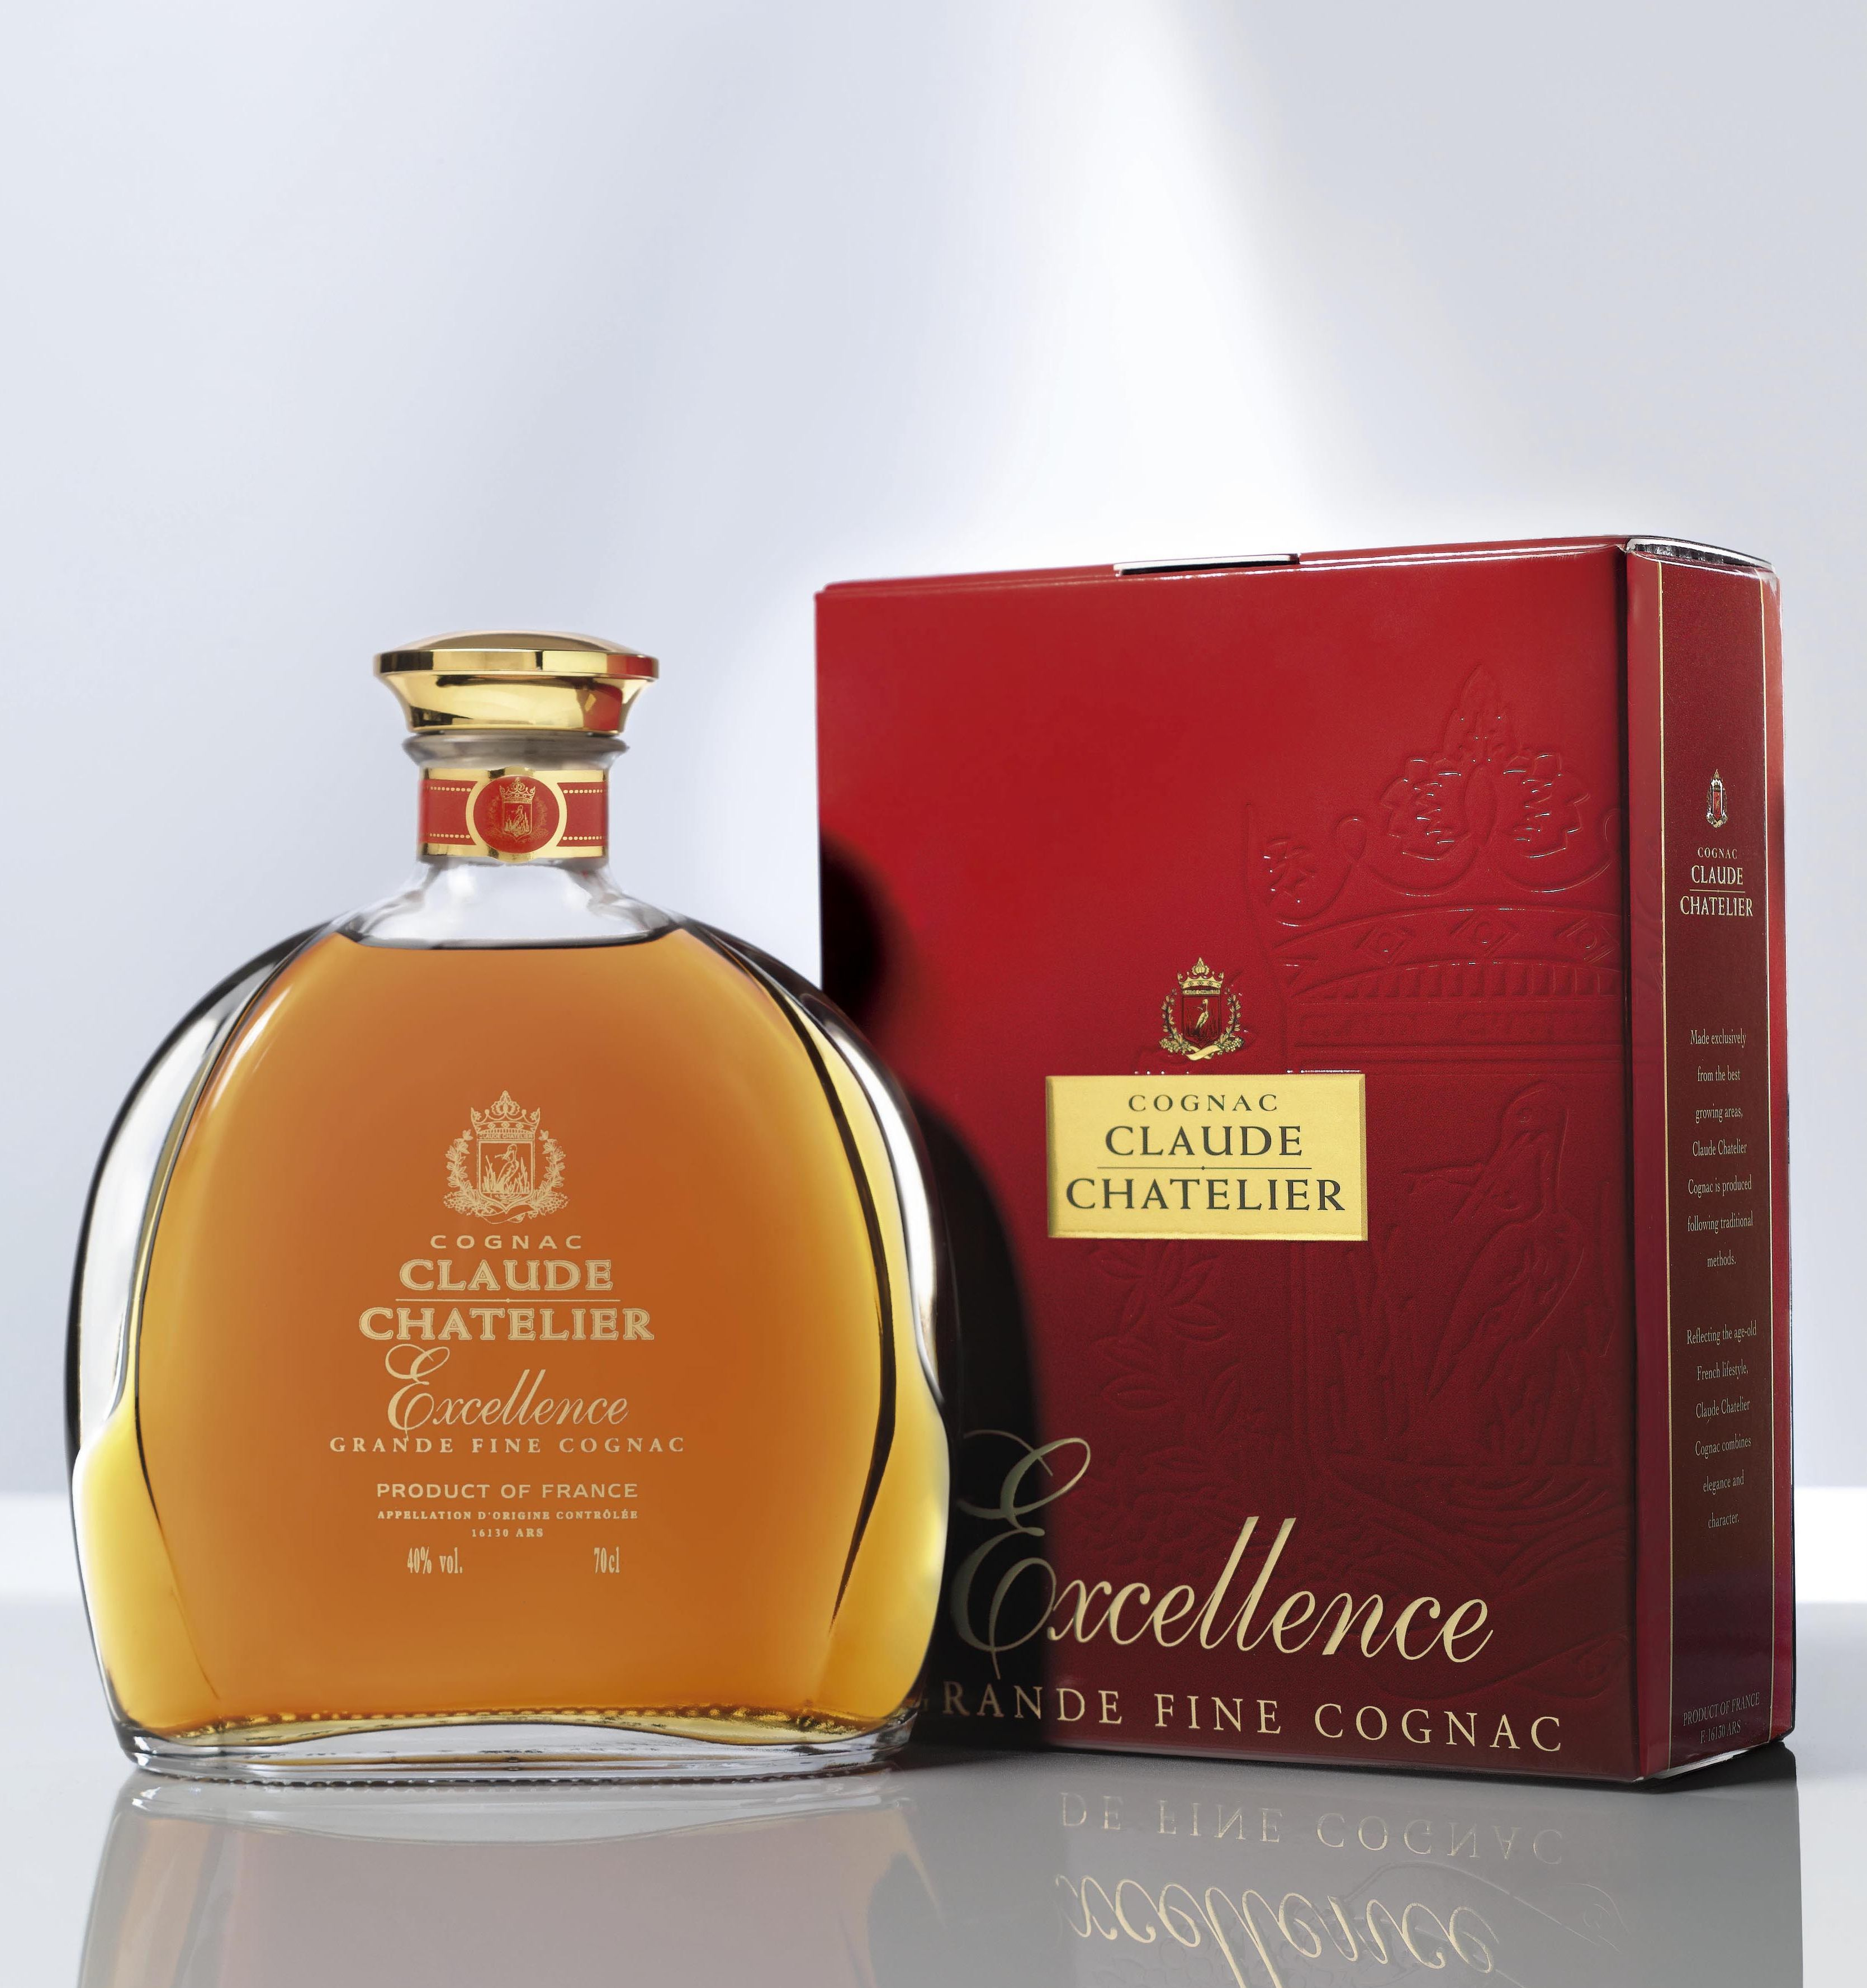 French cognac: brand, extract, rating, reviews 26